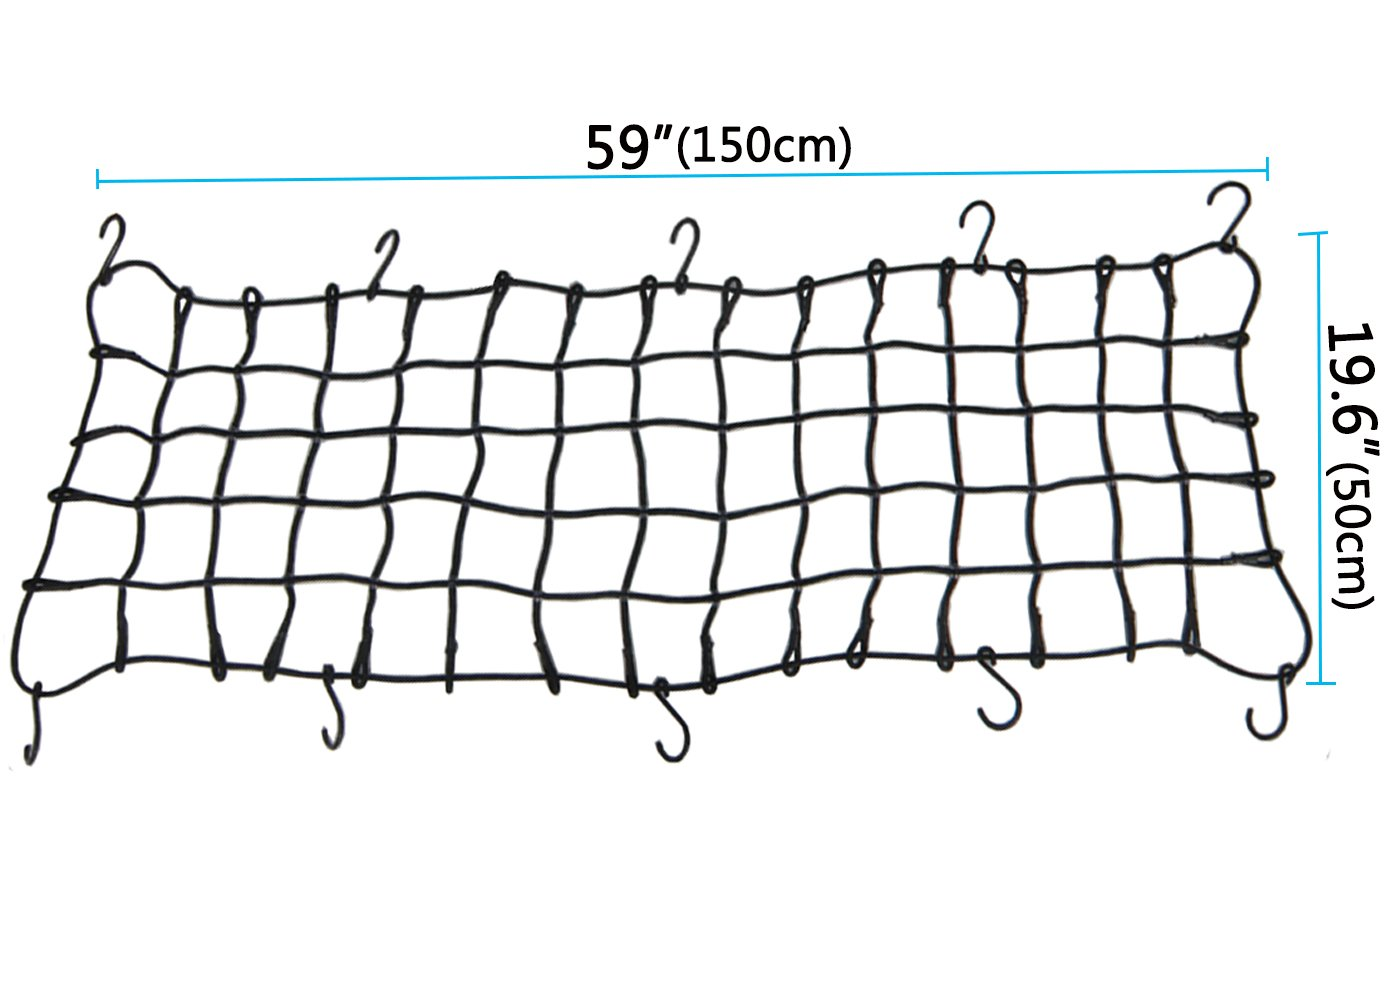 Big Ant 19.6 x 59 Bungee Cargo Net Stretches to 35 x 78 Cargo Nets with 10 Adjustable Metal Hooks,7mm Cords